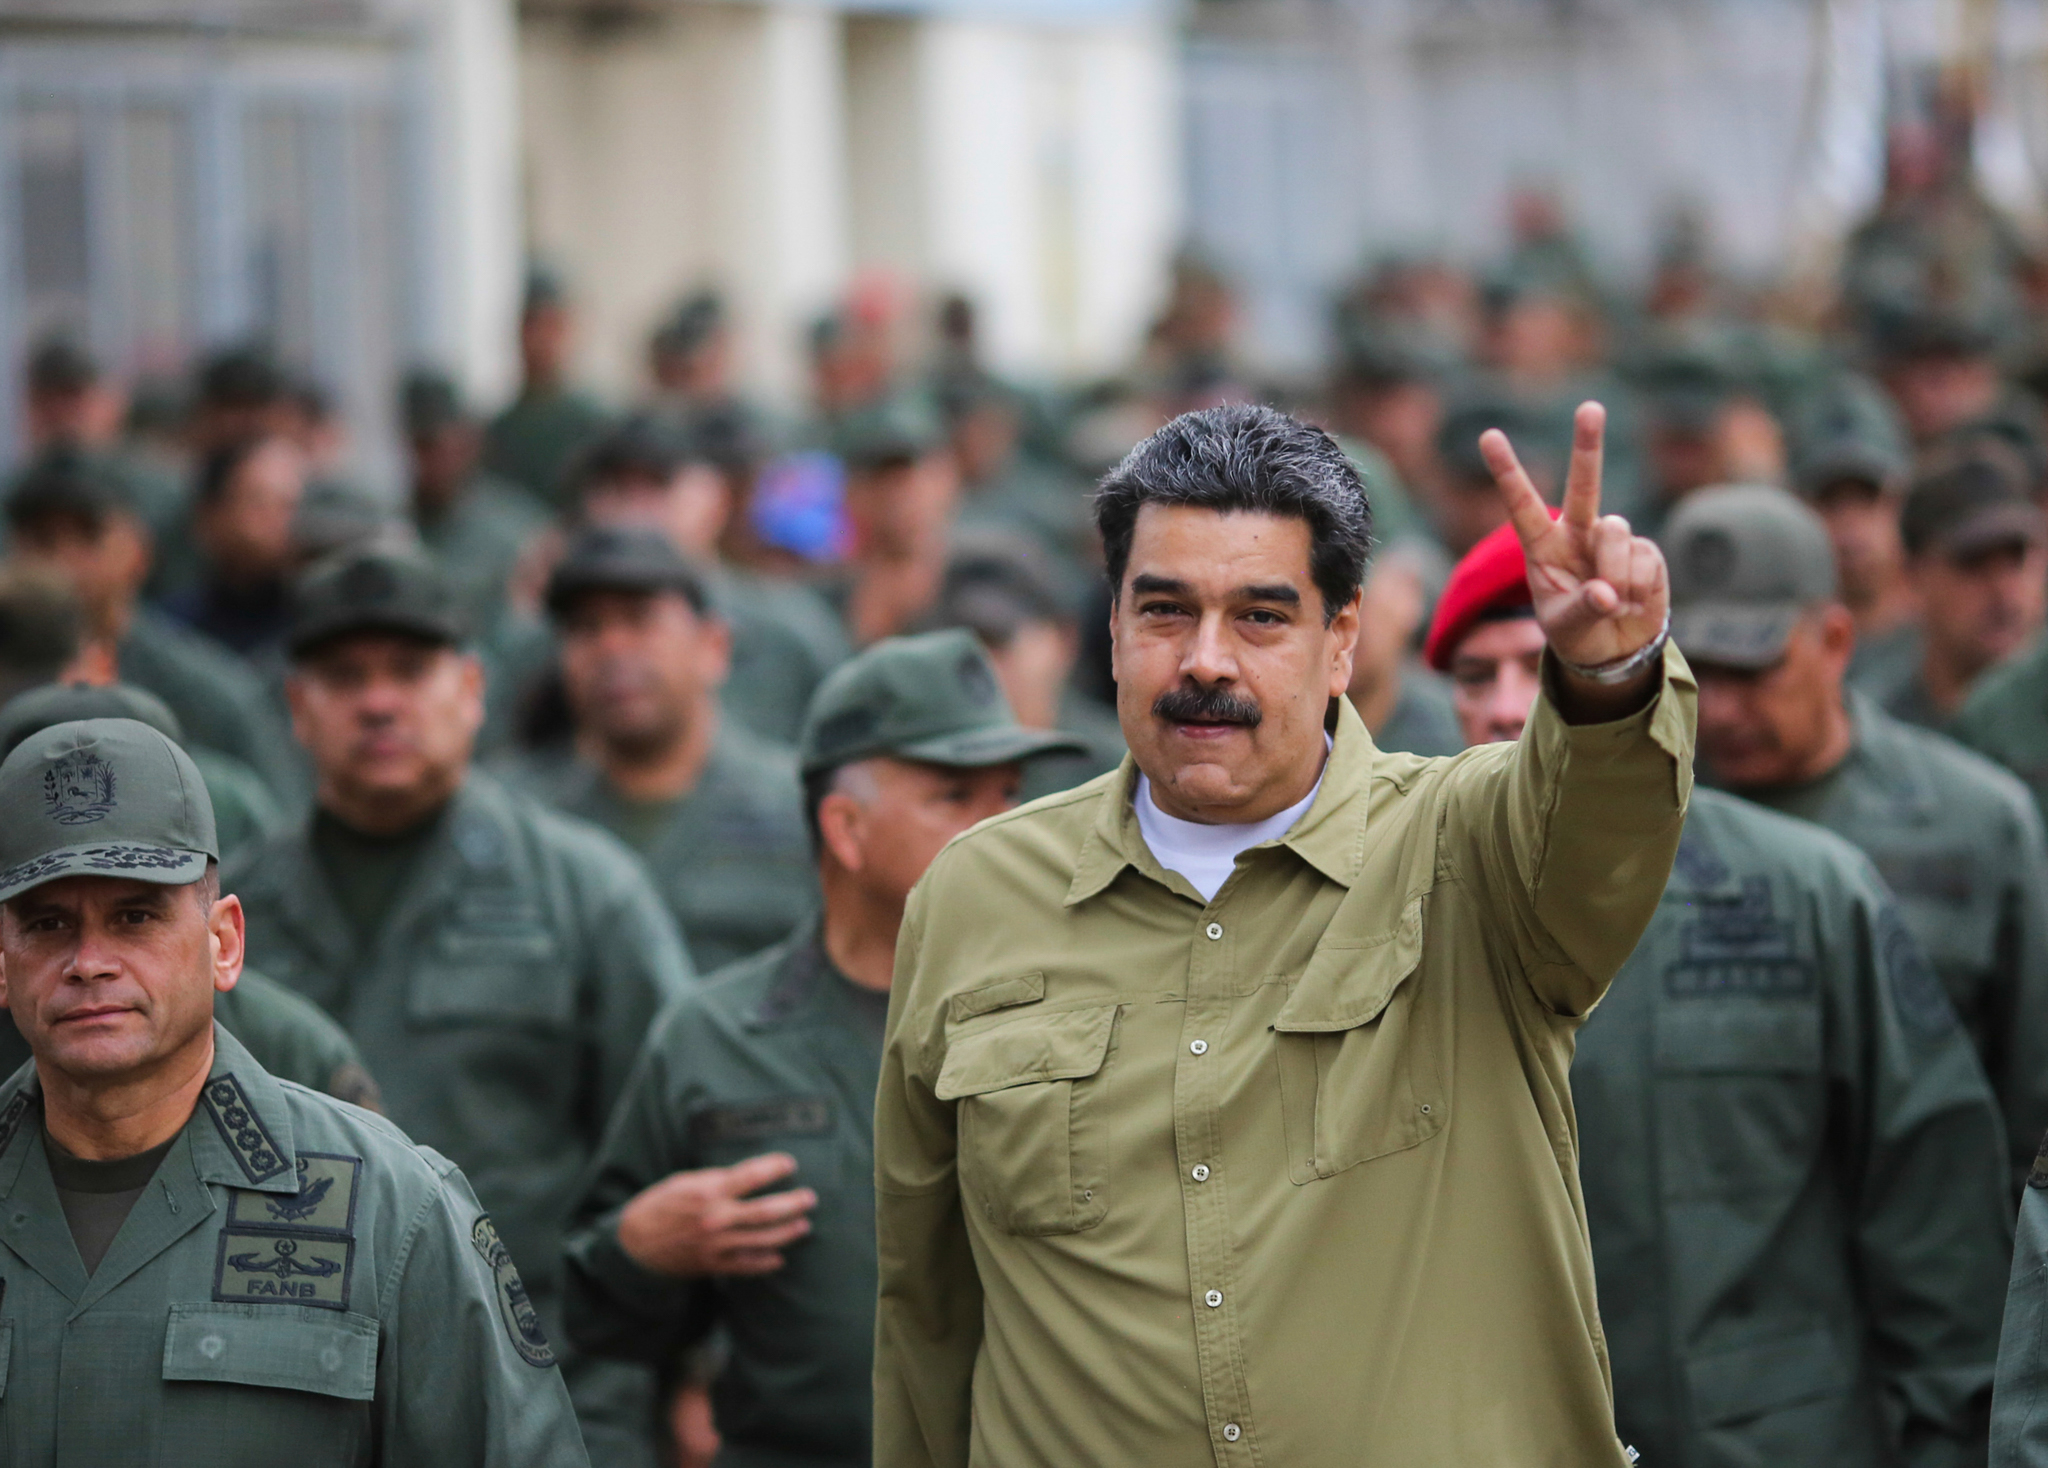 In this handout photo released by the Miraflores Presidential Press Office, Venezuela's President Nicolas Maduro flashes a V for Victory hand gesture after arriving at the Fort Tiuna military base in Caracas, Venezuela, Wednesday, Jan. 30, 2019. Since opposition leader Juan Guaido declared himself interim president last week with the support of the U.S. and other nations, Maduro has appeared almost daily on state TV with his military, projecting an image of invincibility even as international pressure against him builds. (Marcelo Garcia/Miraflores Presidential Press Office via AP)